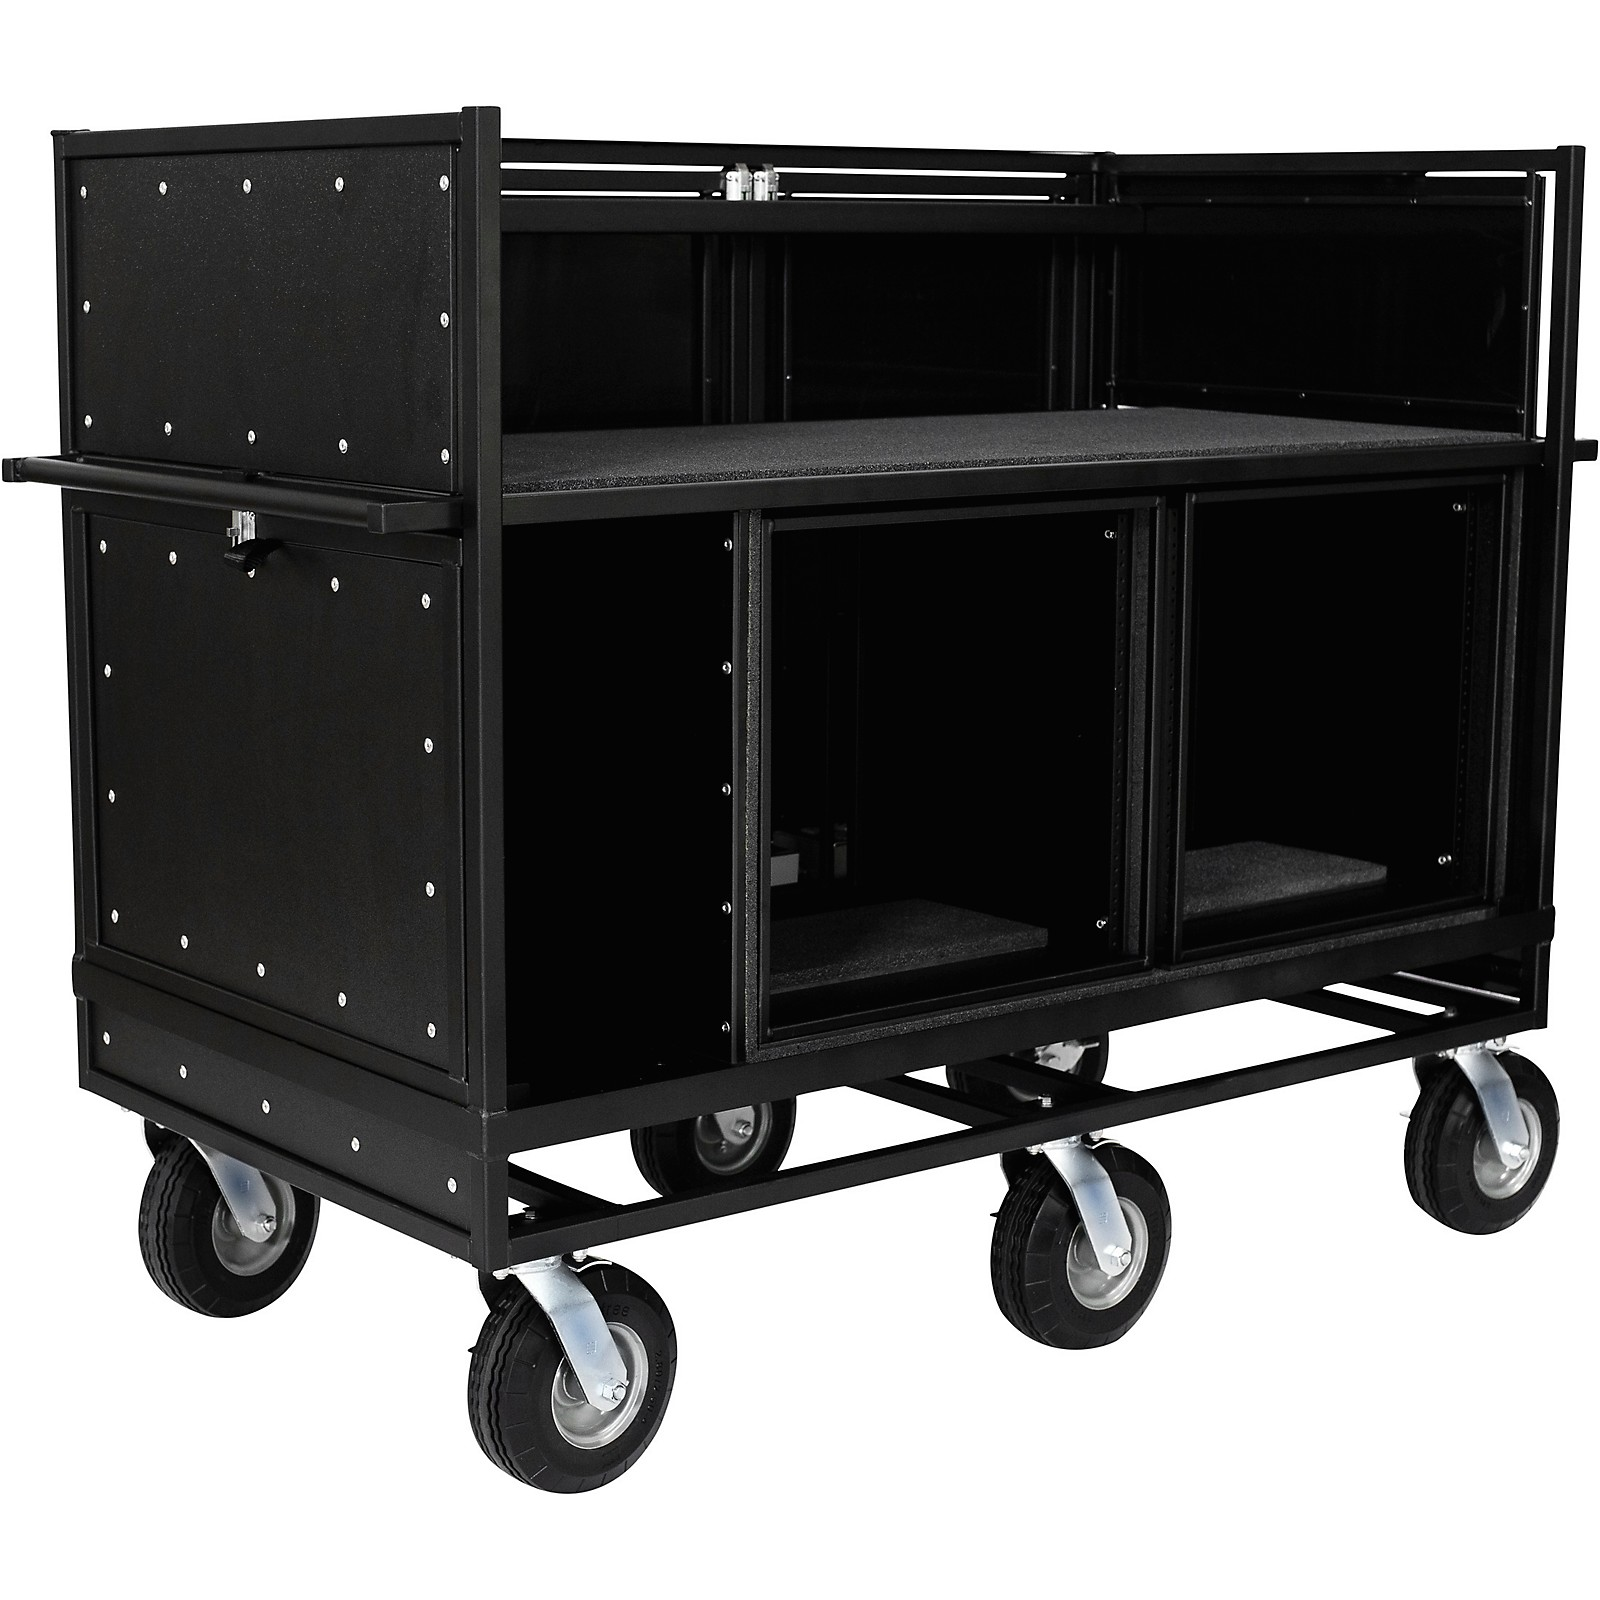 Pageantry Innovations Extended Double Mixer Cart